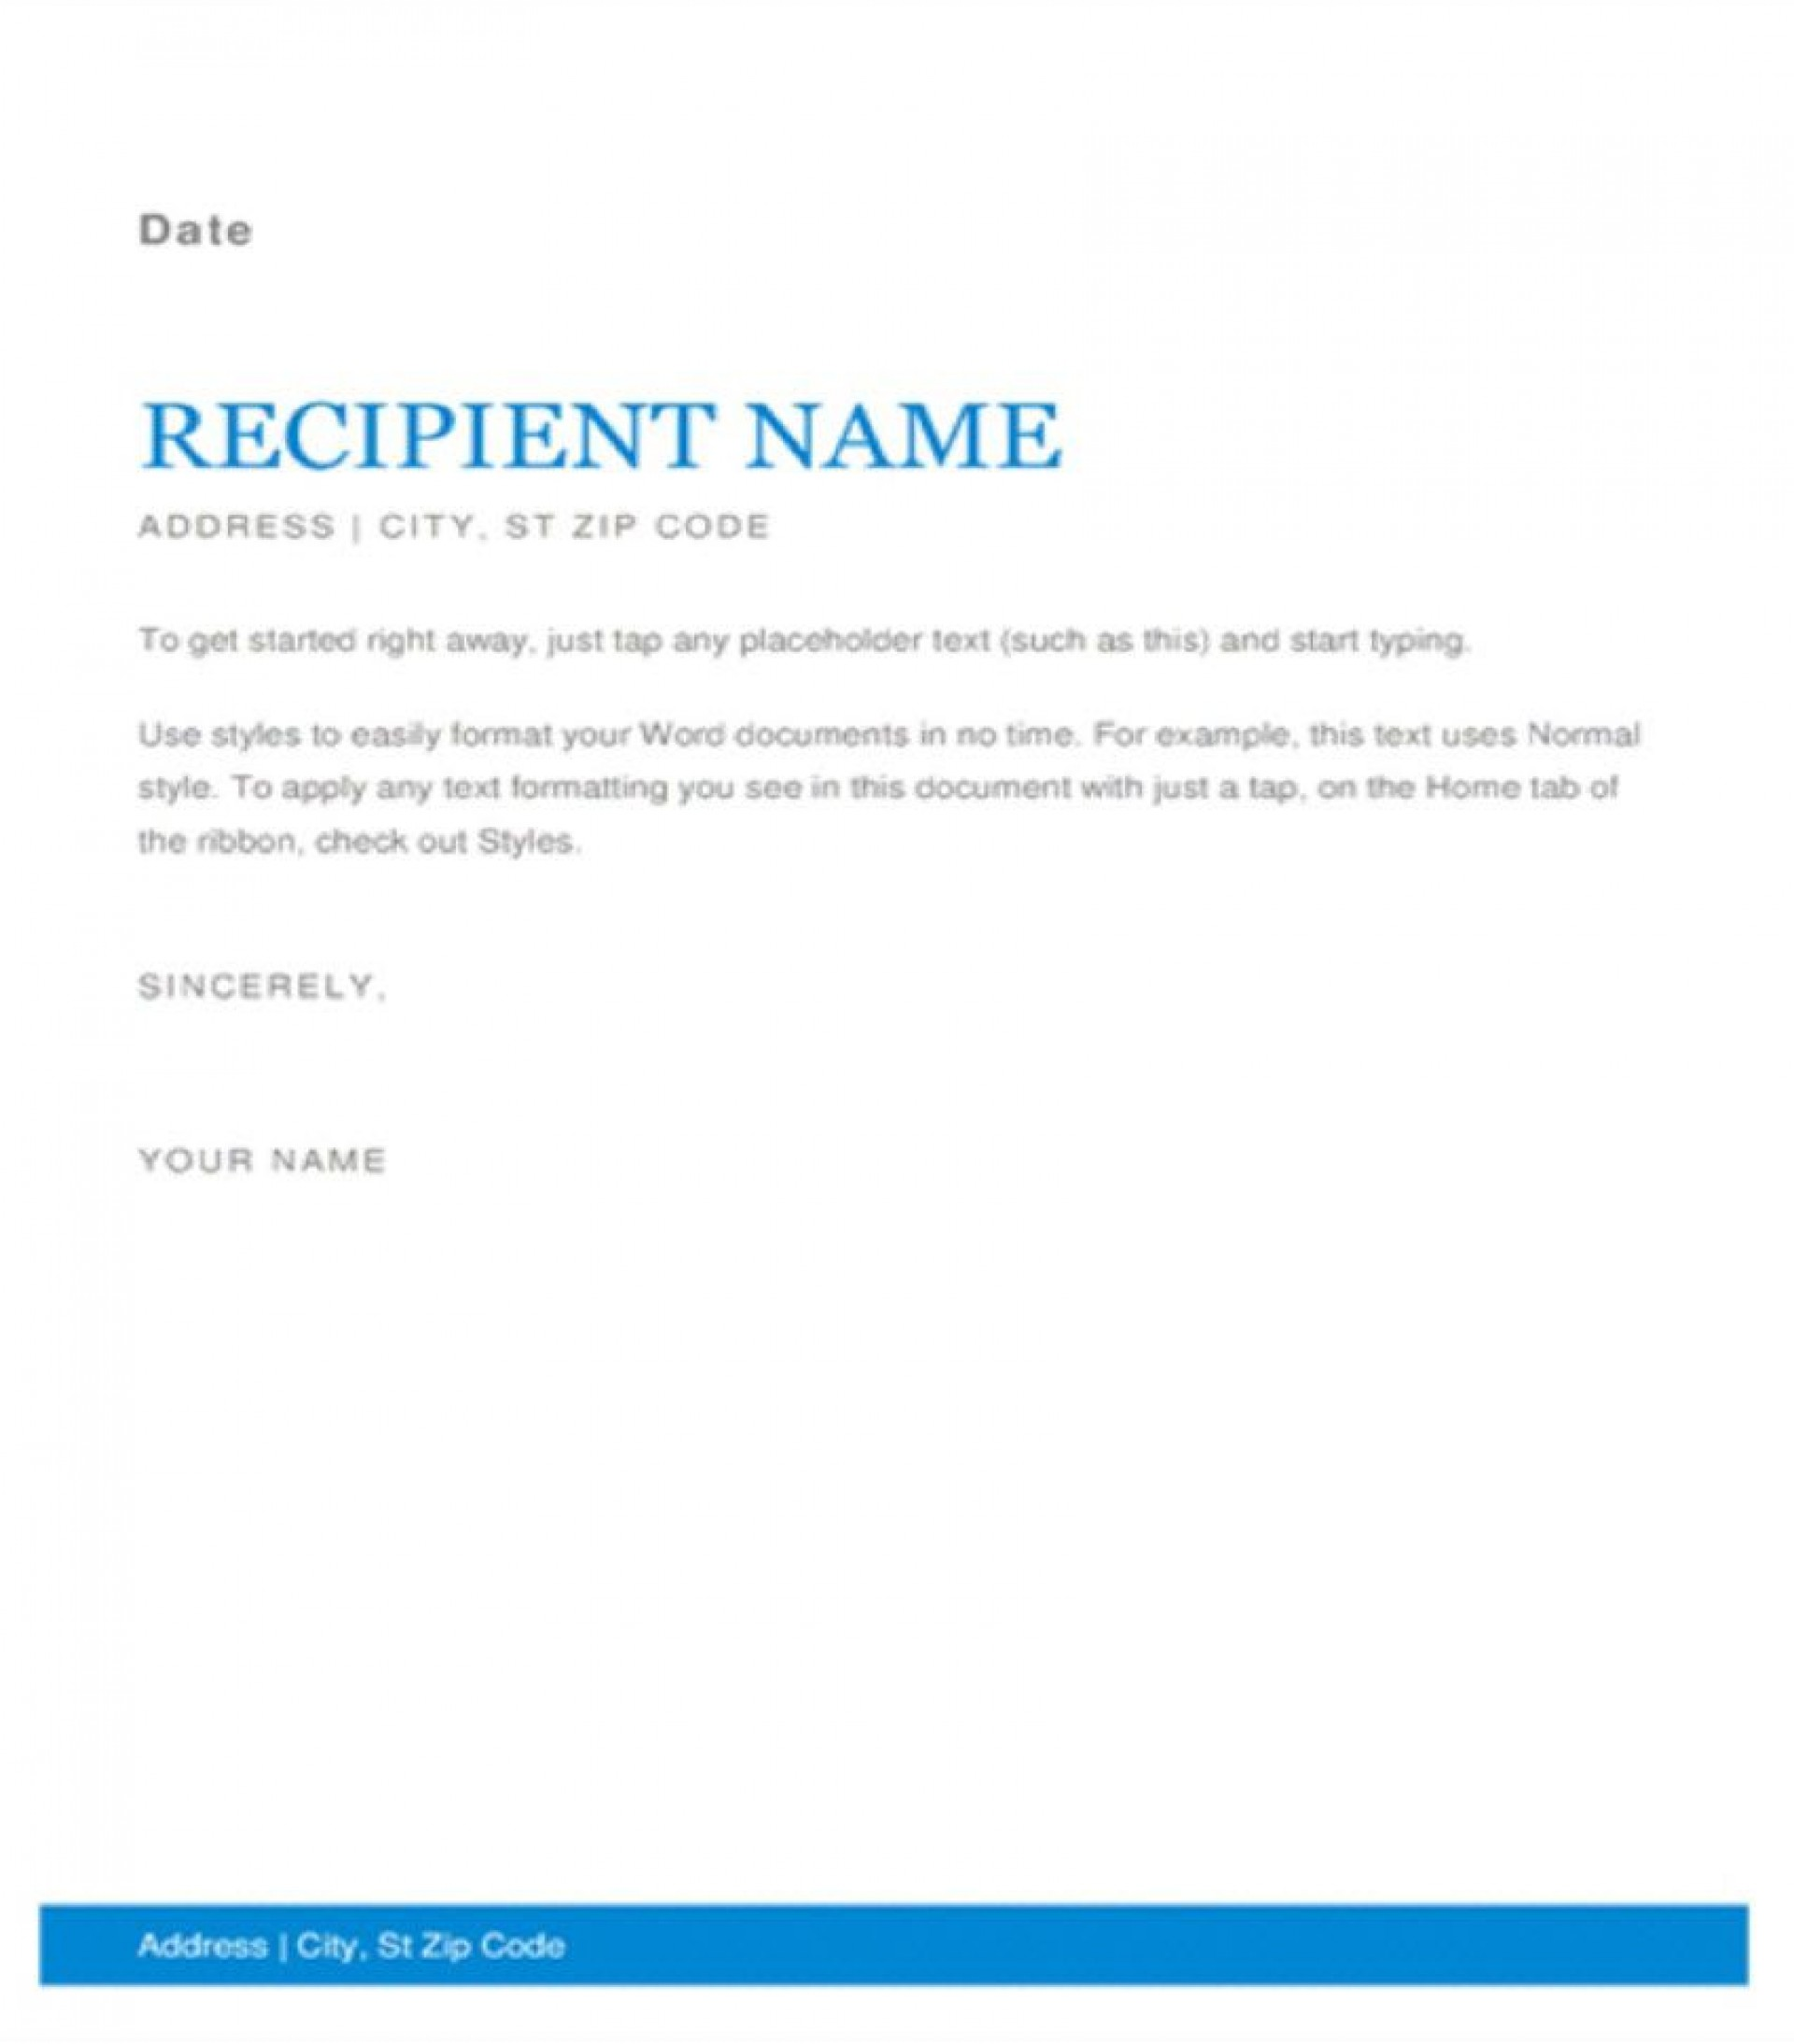 005 Stunning Microsoft Word Memo Template Example  Professional 2010 Free Legal1920